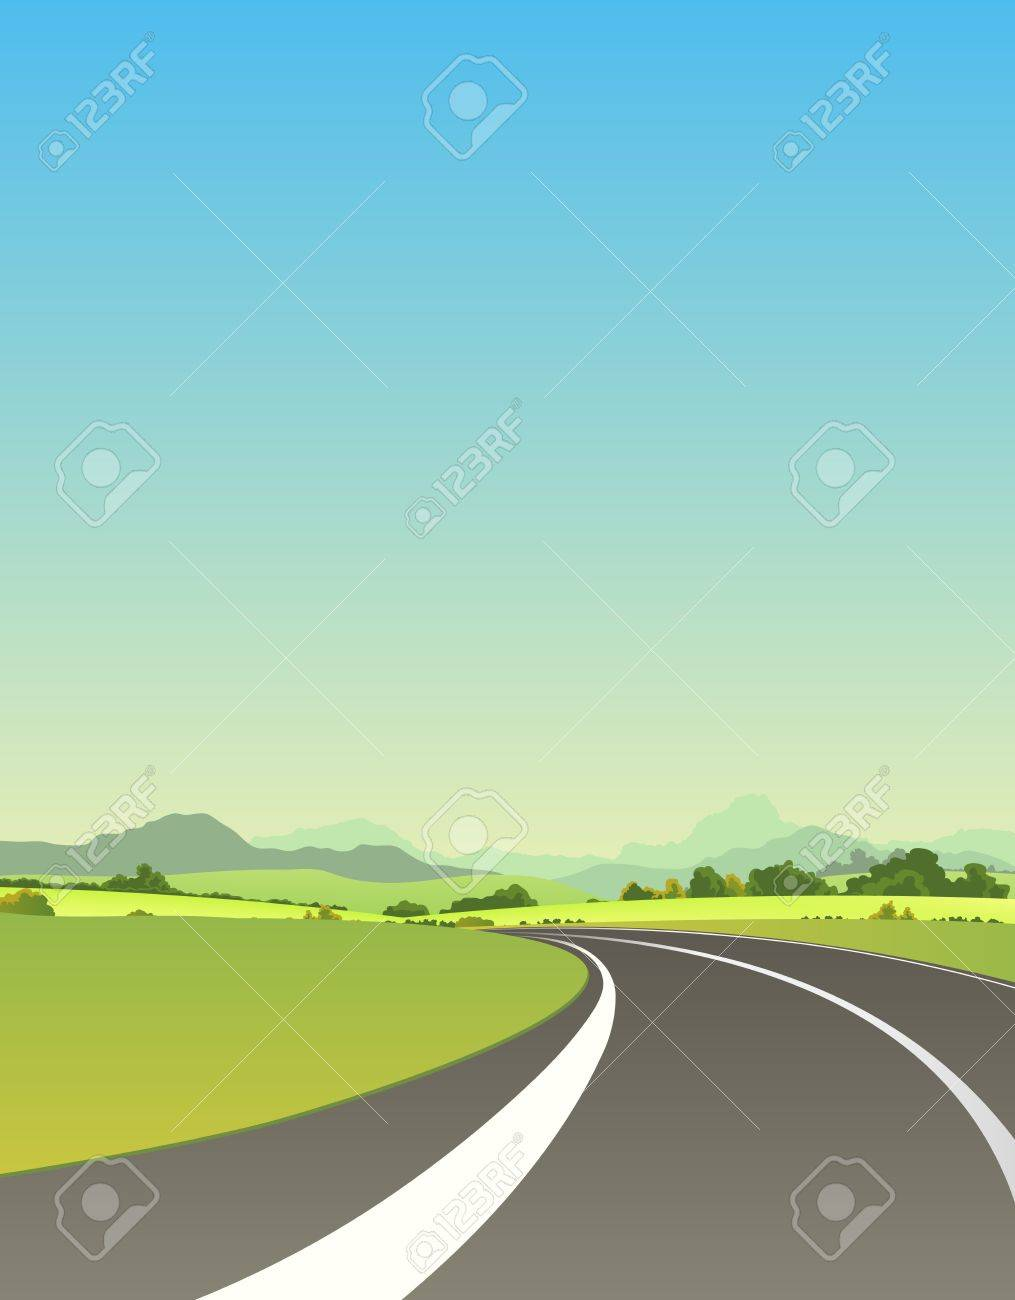 Illustration of a summer or spring highway road driving to mountains landscape for vacations and travel background Stock Vector - 14116424